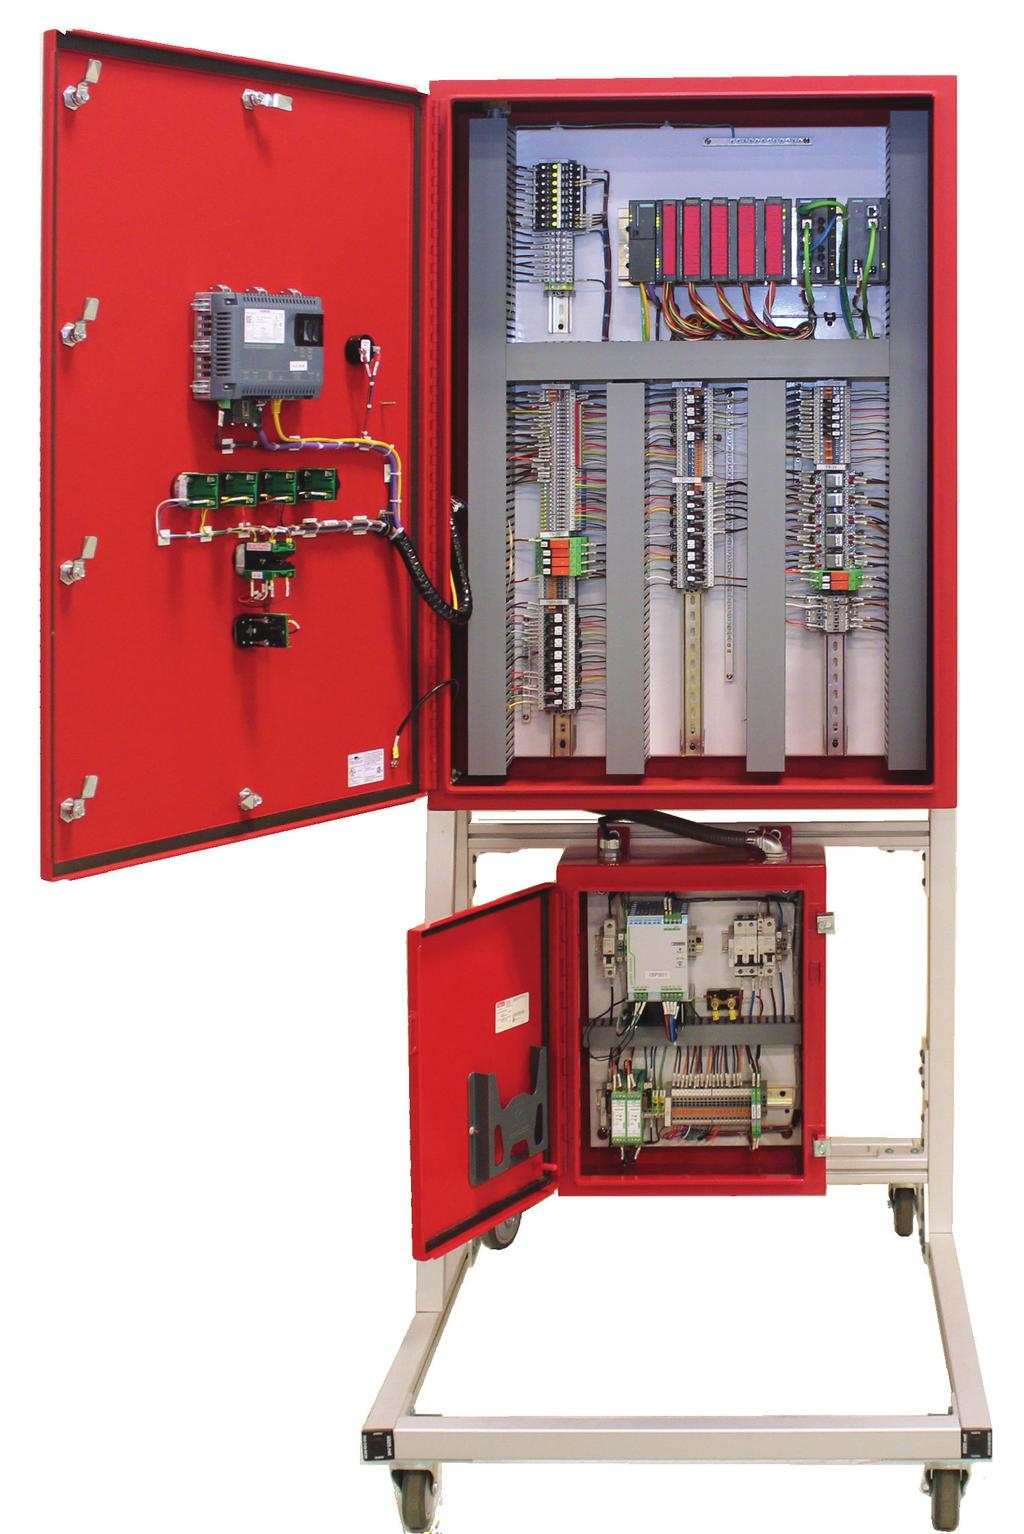 FGS1300 Fire & Gas Alarm & Control System Features The FGS1300 provides fire and gas monitoring, and suppression control for modules in remote locations that have less than 40 I/O.